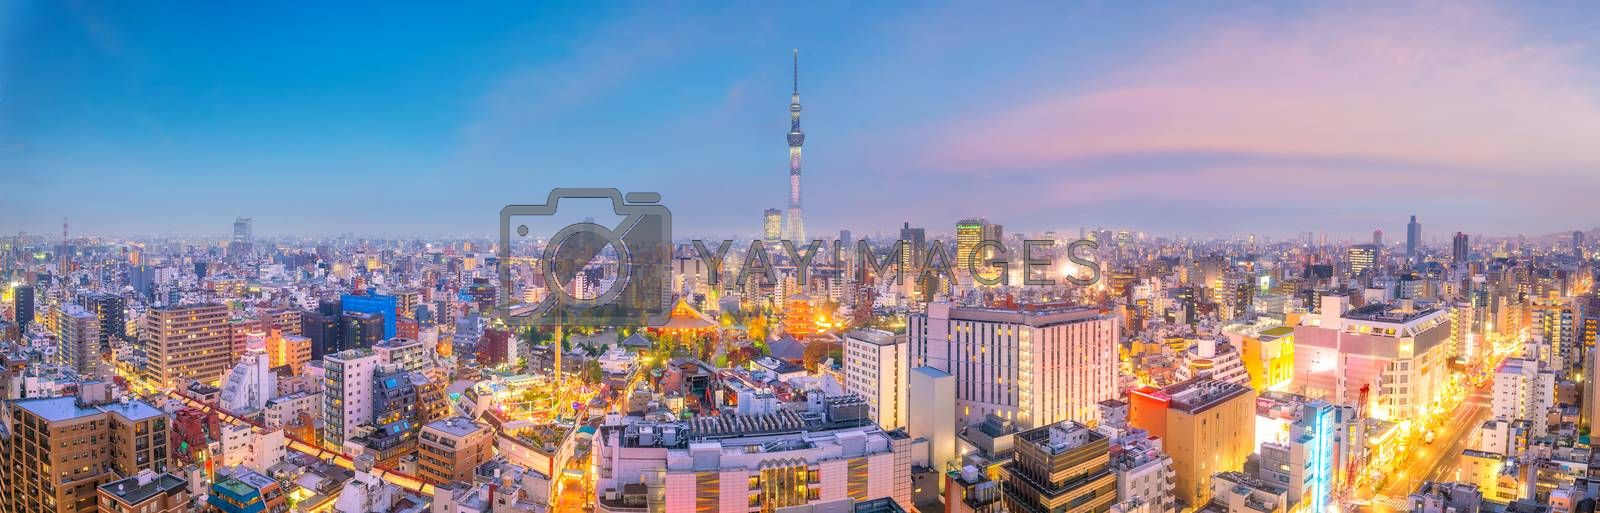 Royalty free image of View of Tokyo skyline at sunset  by f11photo